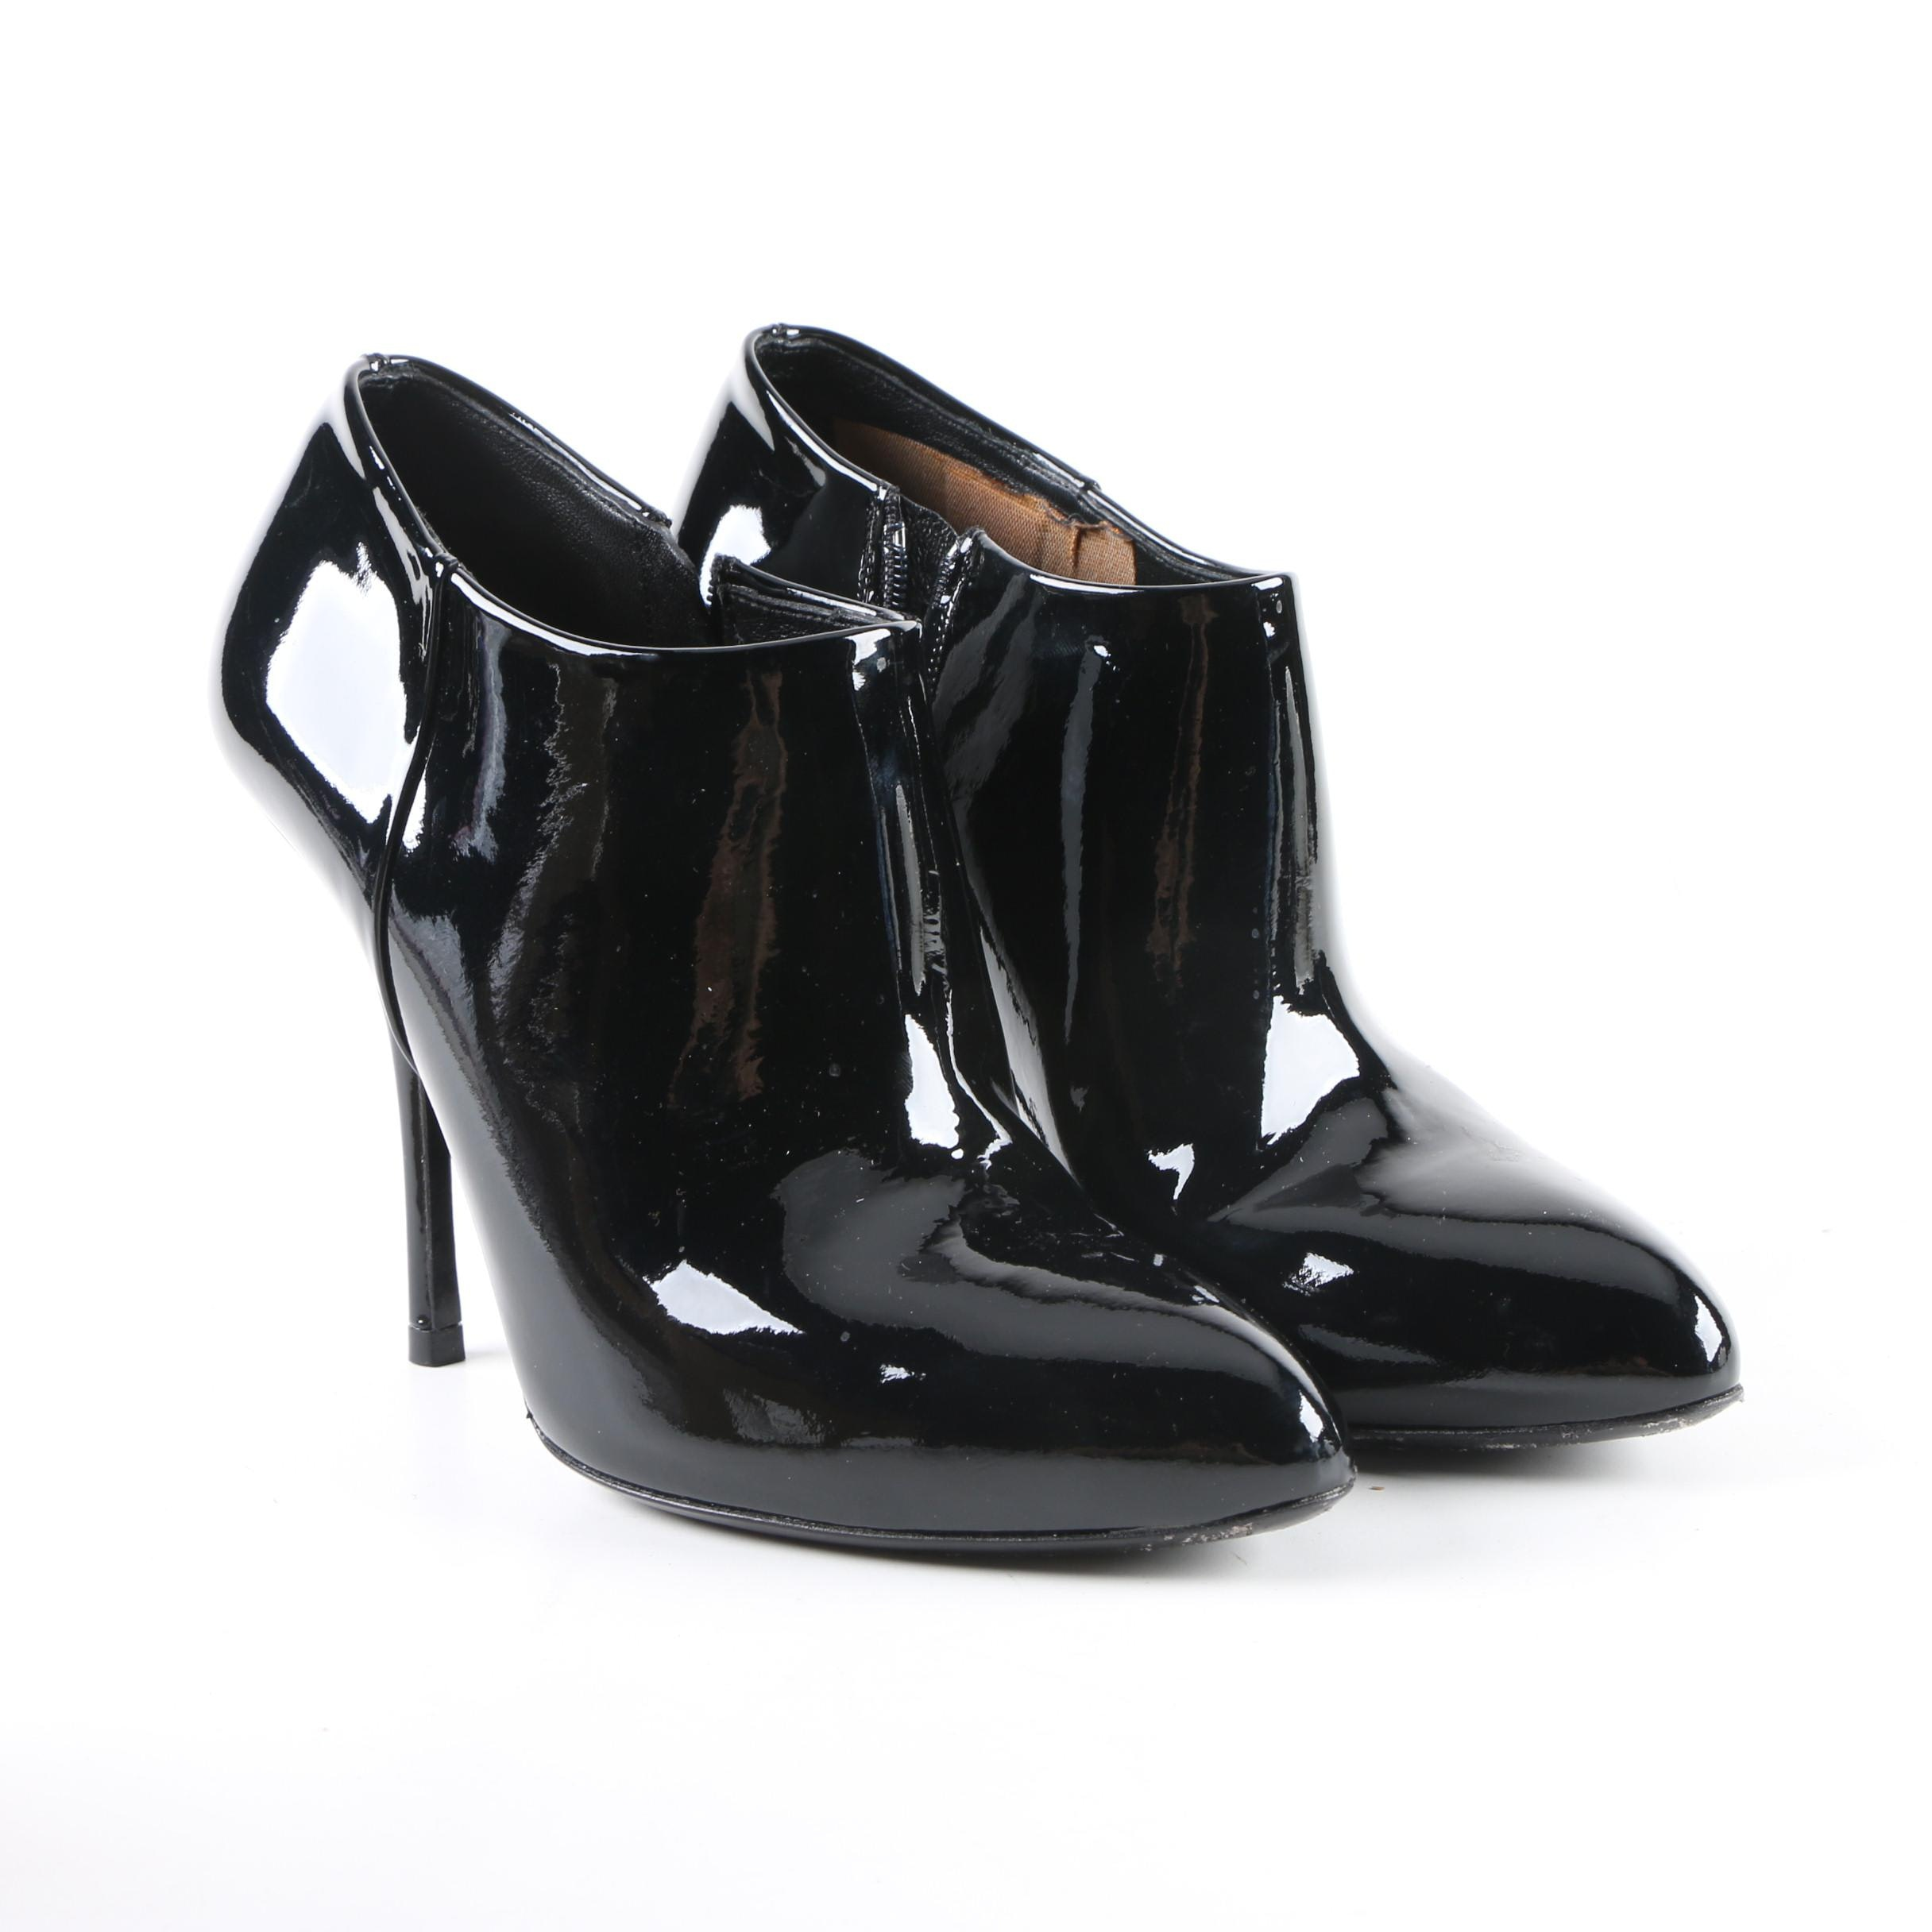 Women's Gucci Black Patent Leather Booties